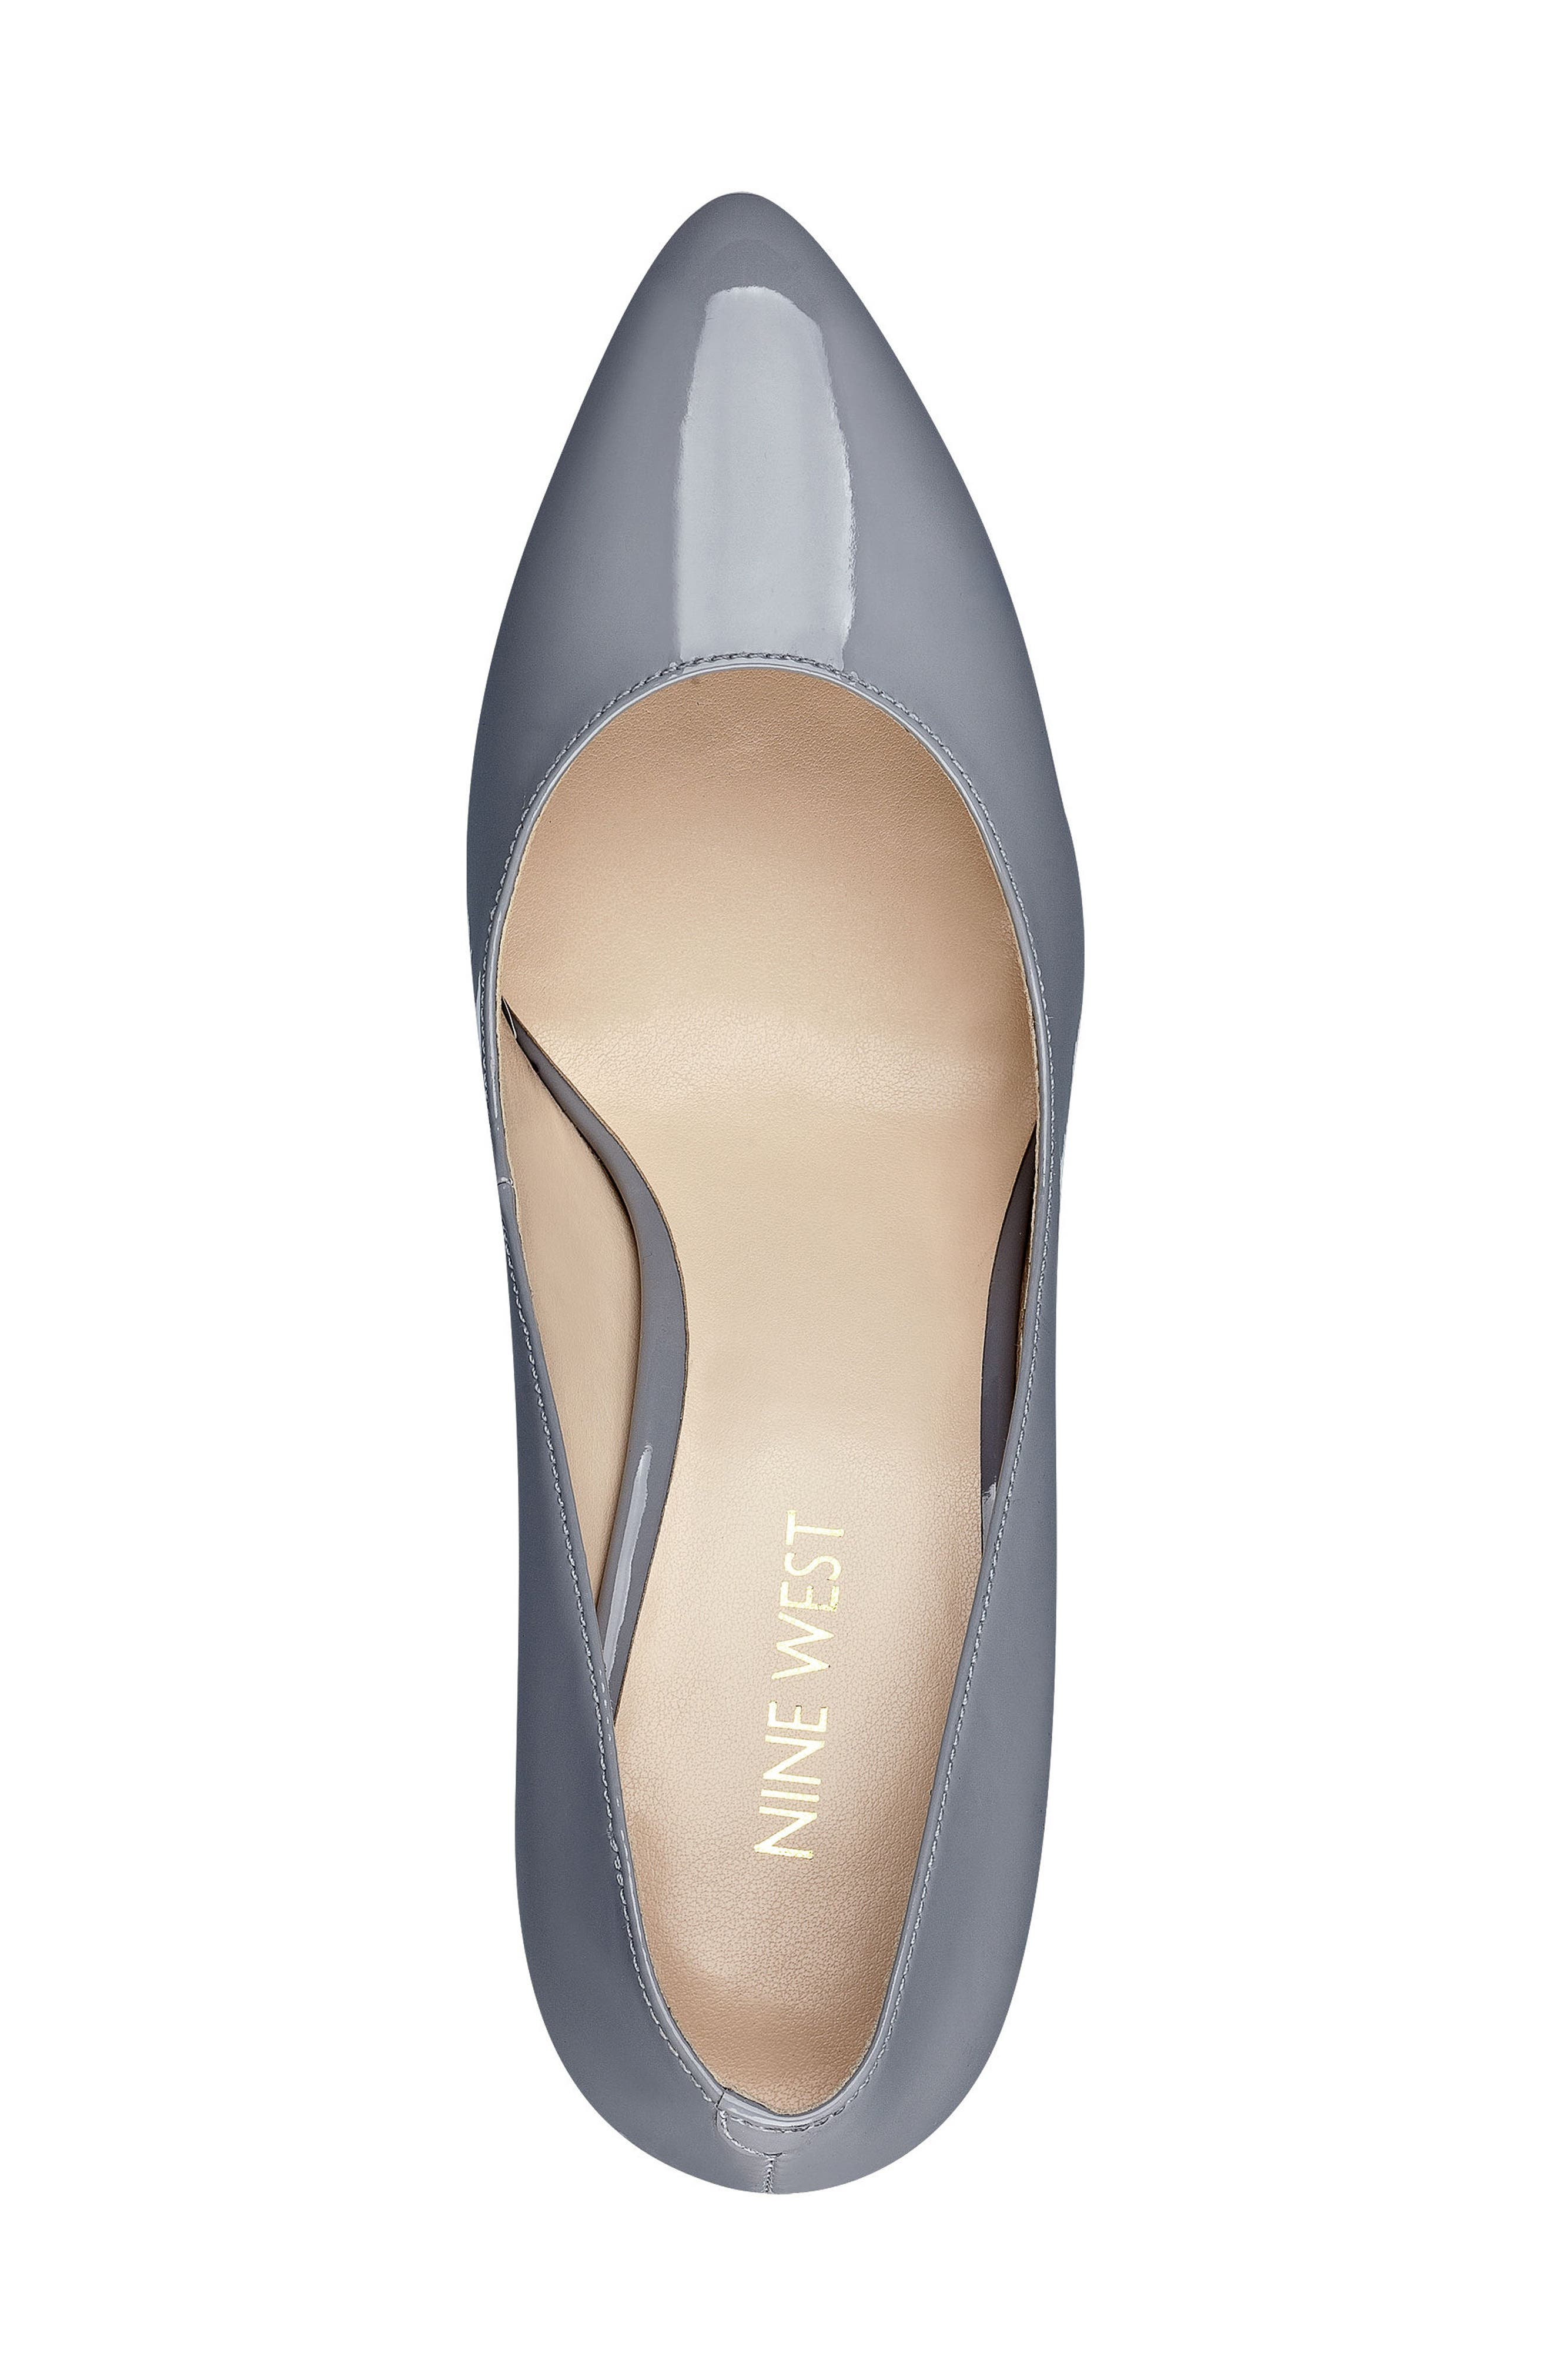 Scheila Pointy Toe Pump,                             Alternate thumbnail 3, color,                             GREY FAUX LEATHER